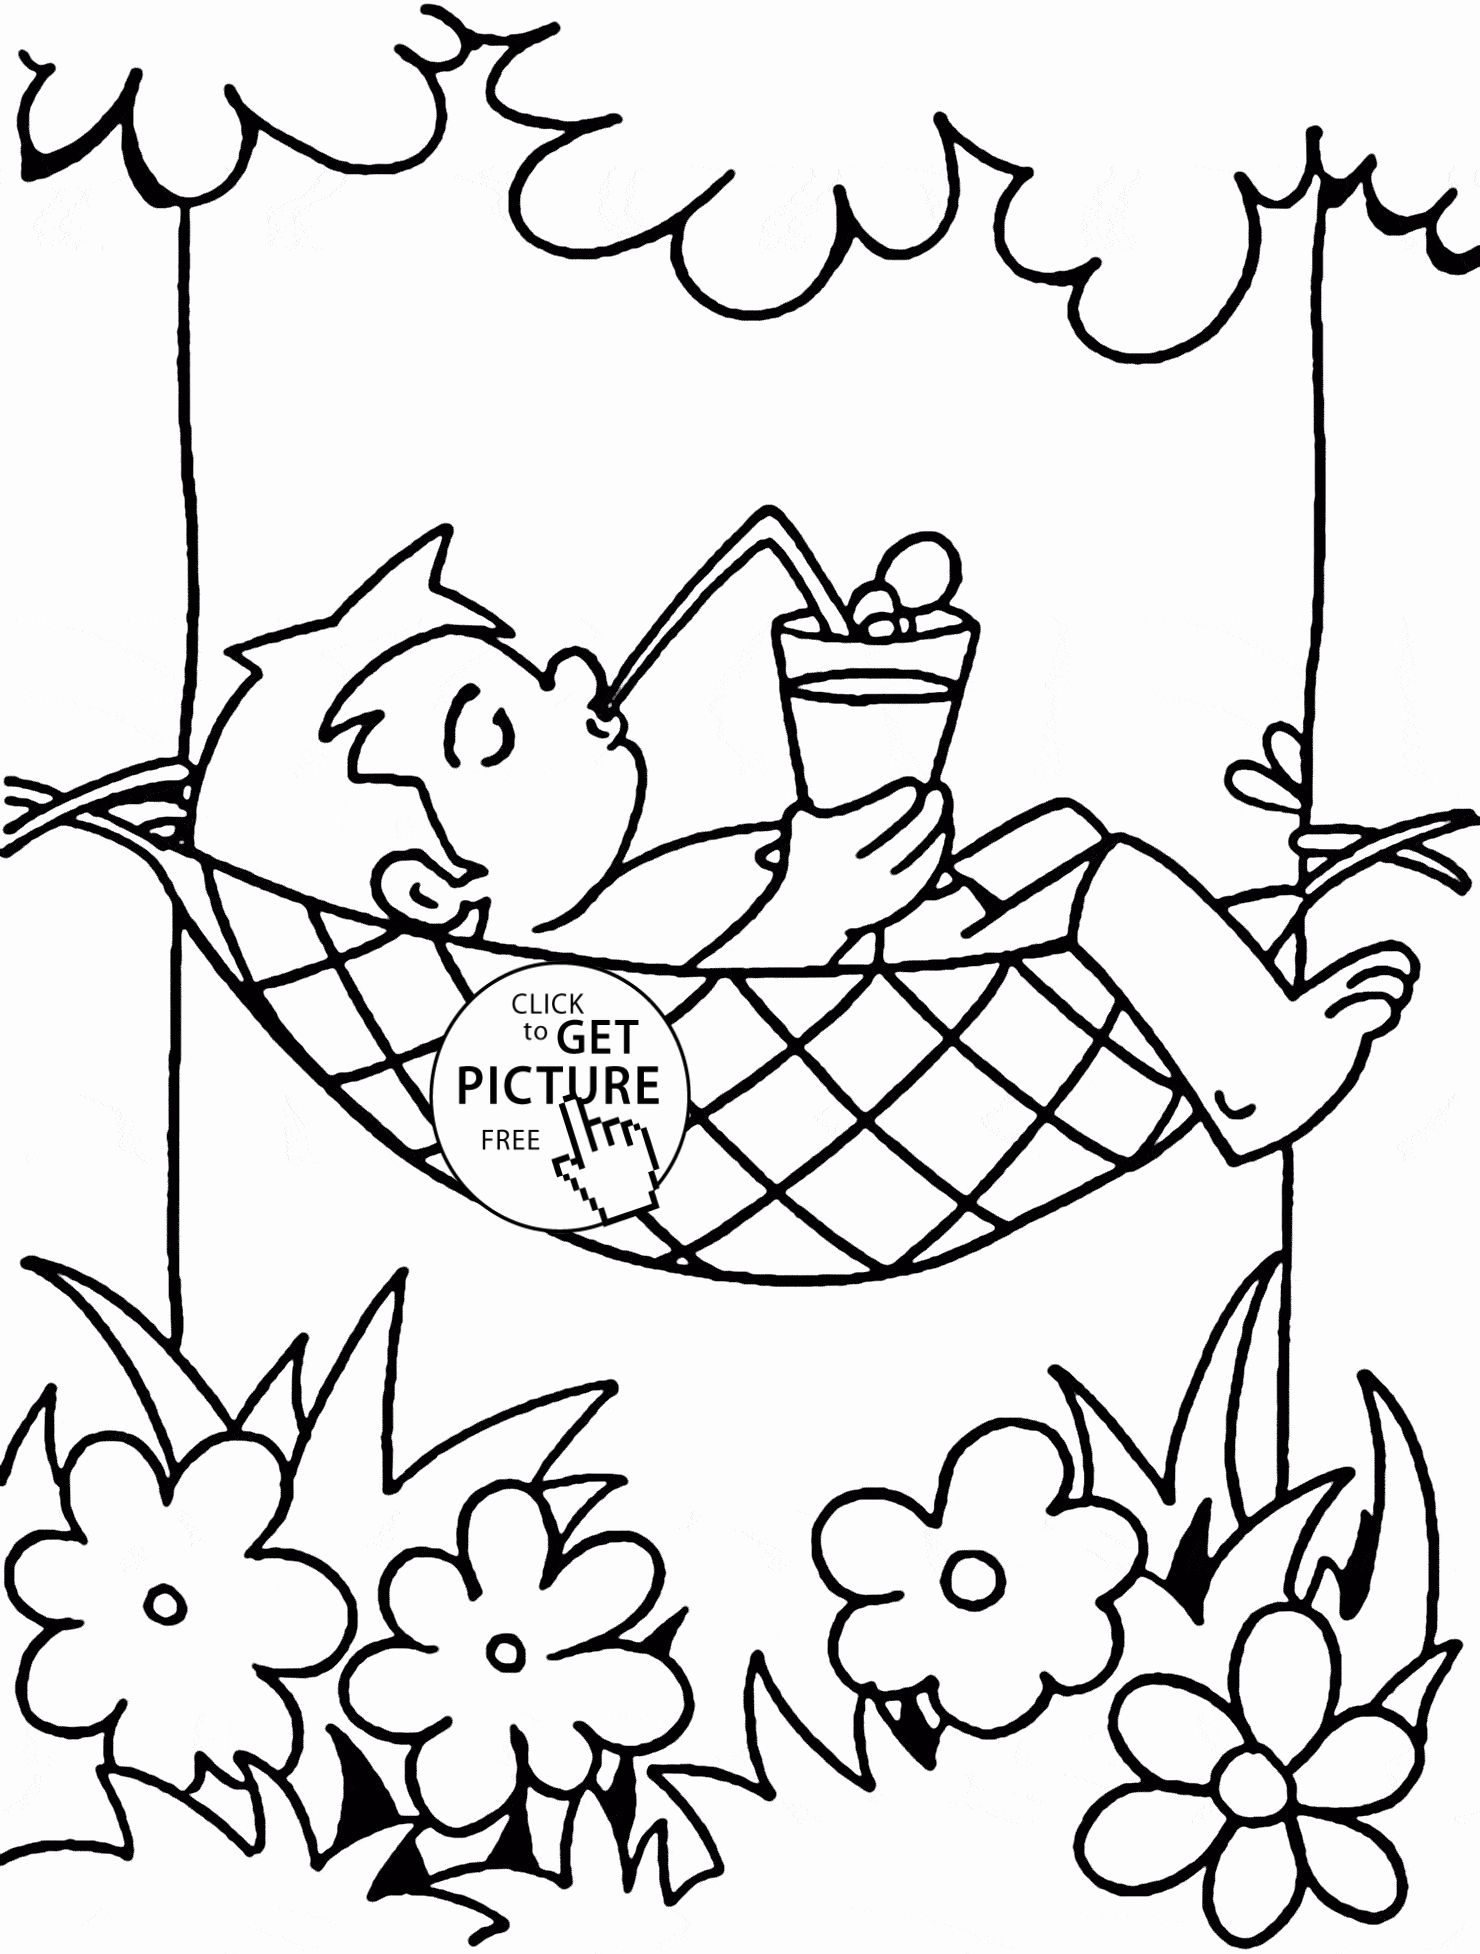 Summer Time Coloring Sheets In